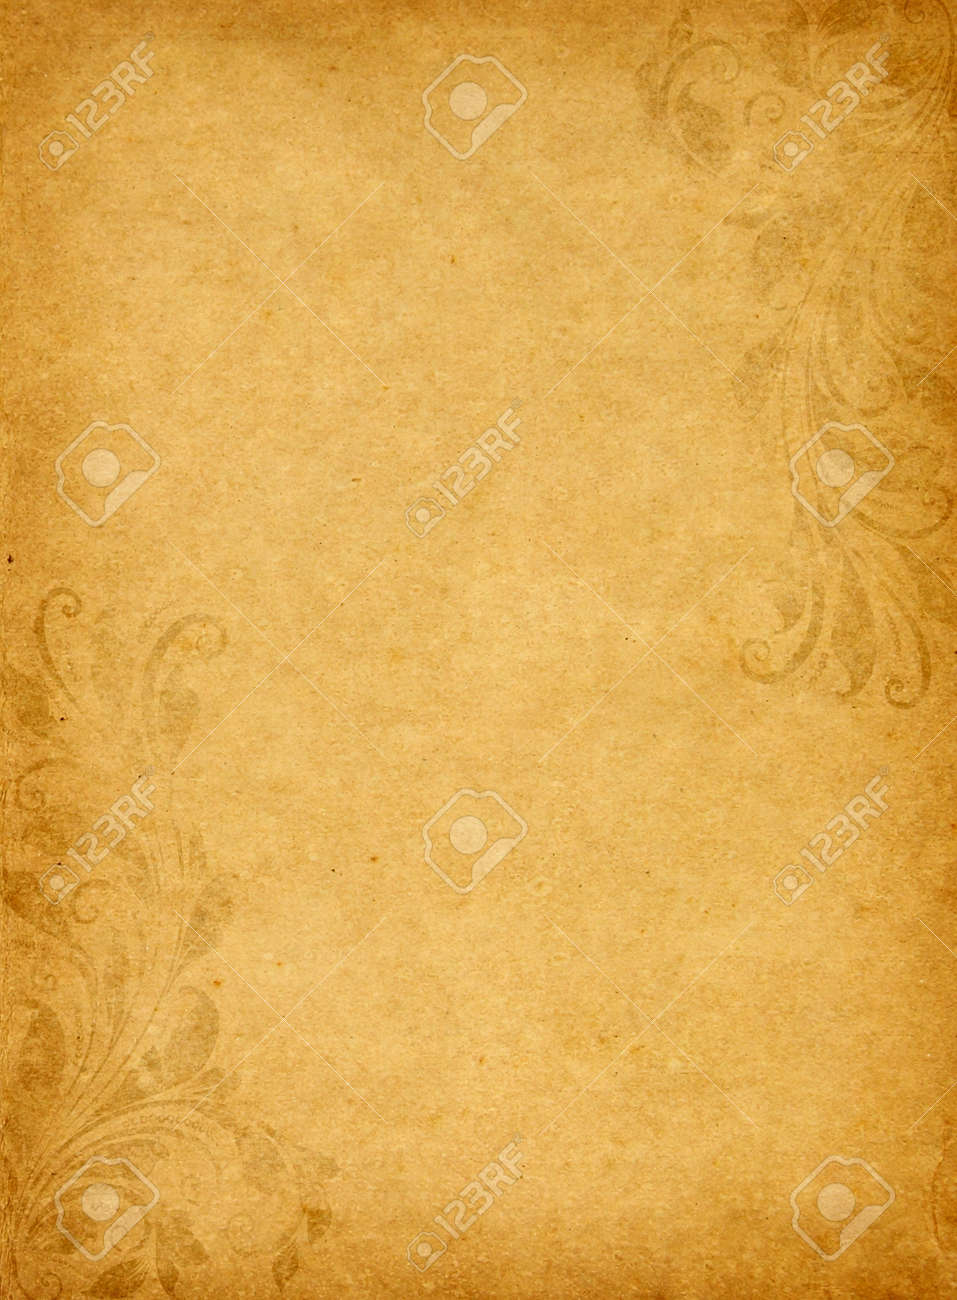 Old Grunge Paper Background With Vintage Victorian Style Stock Photo